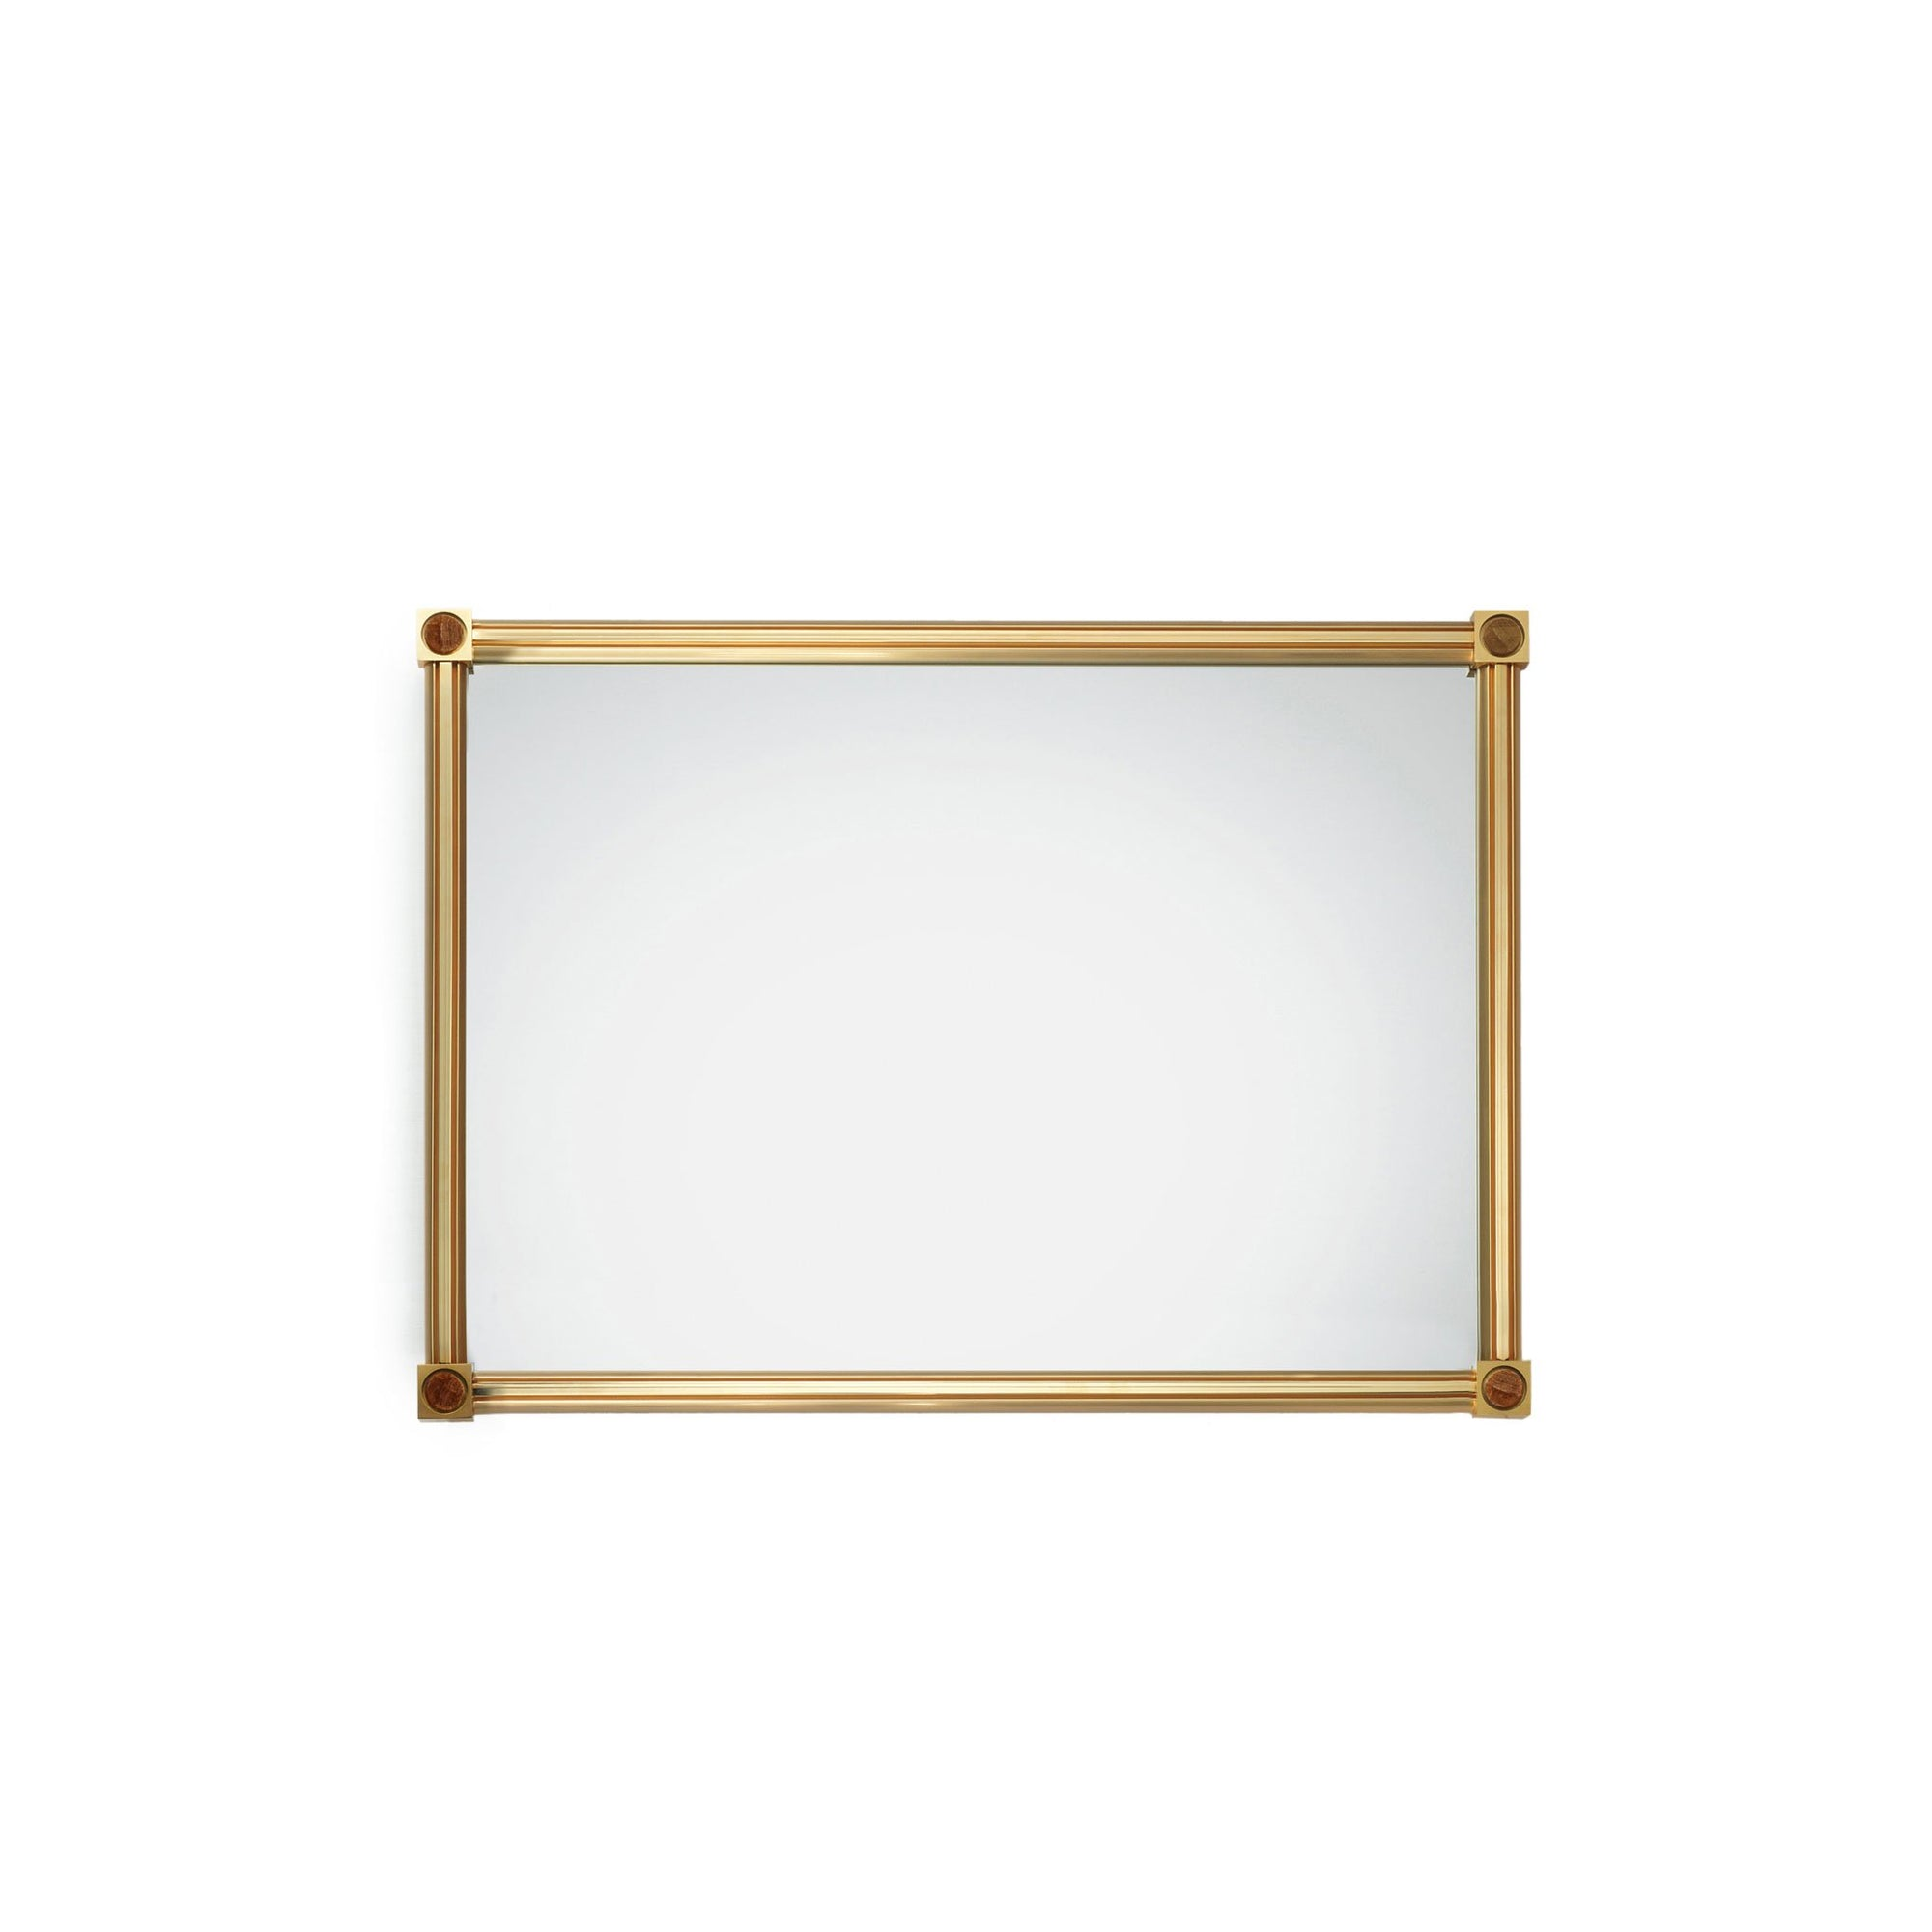 4269M21-BROX-GP Sherle Wagner International Modern Mirror with Brown Onyx insert in Gold Plate metal finish